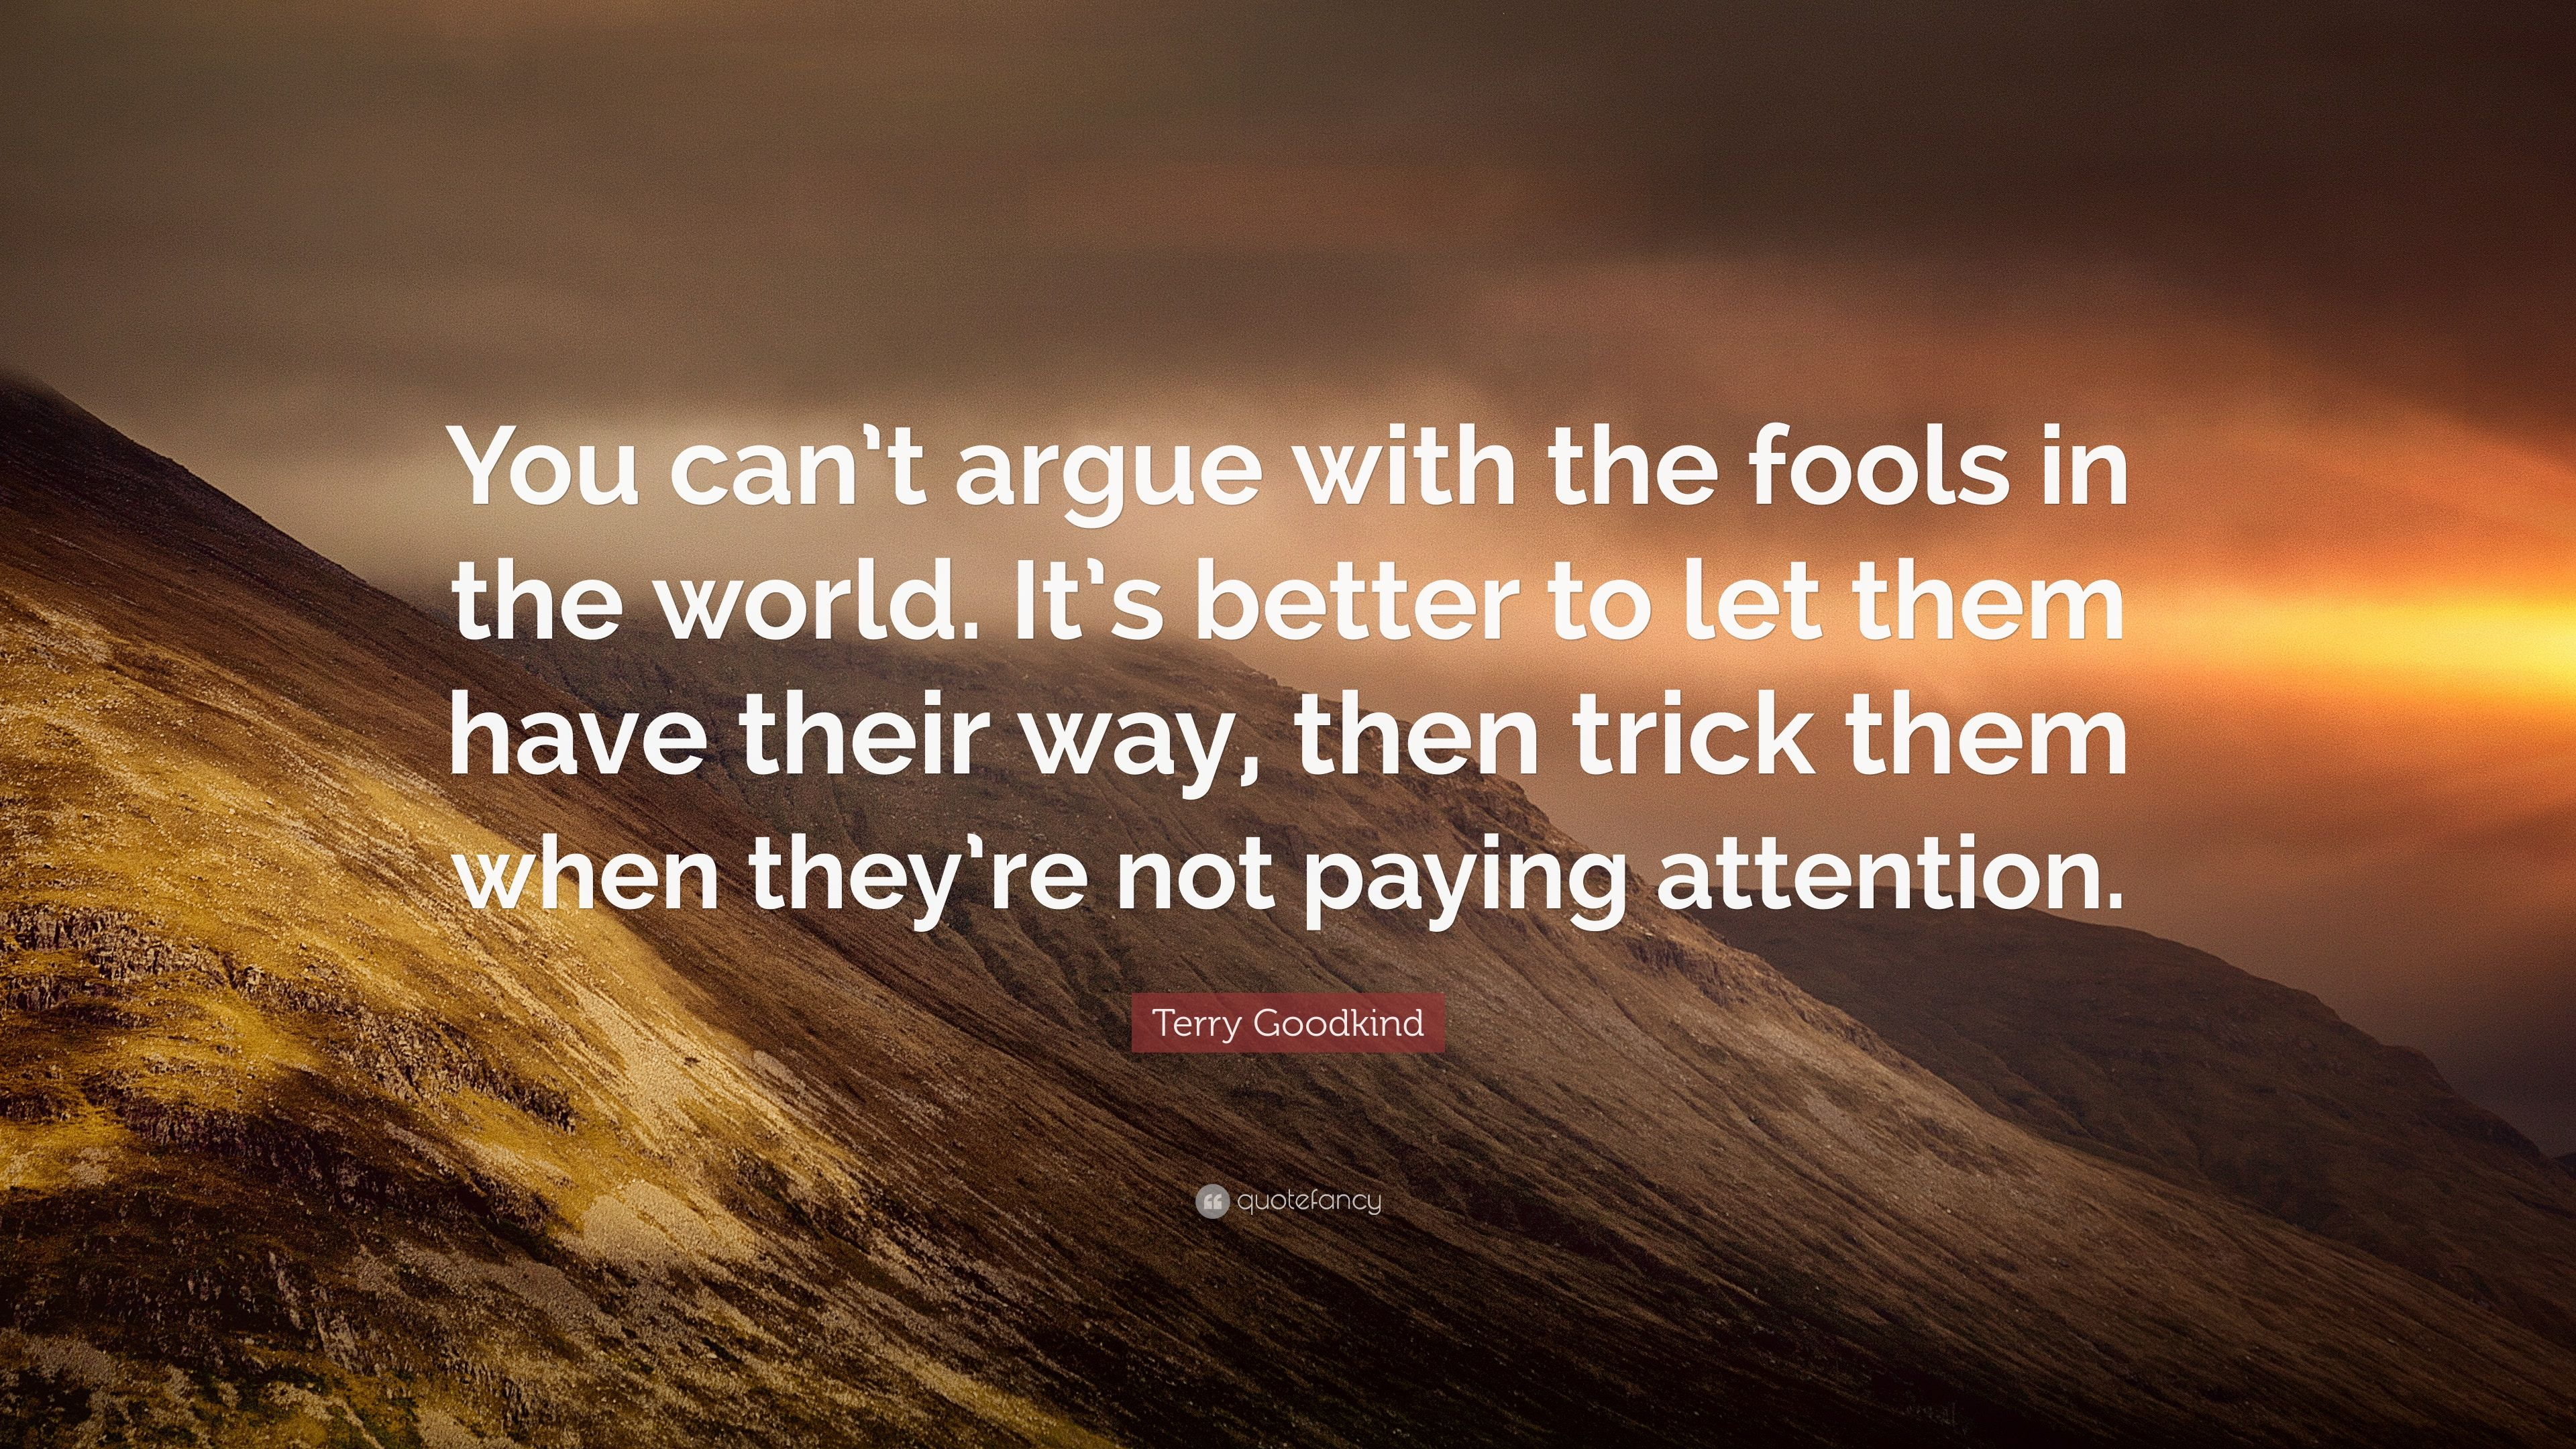 Terry Goodkind Quote You Cant Argue With The Fools In The World